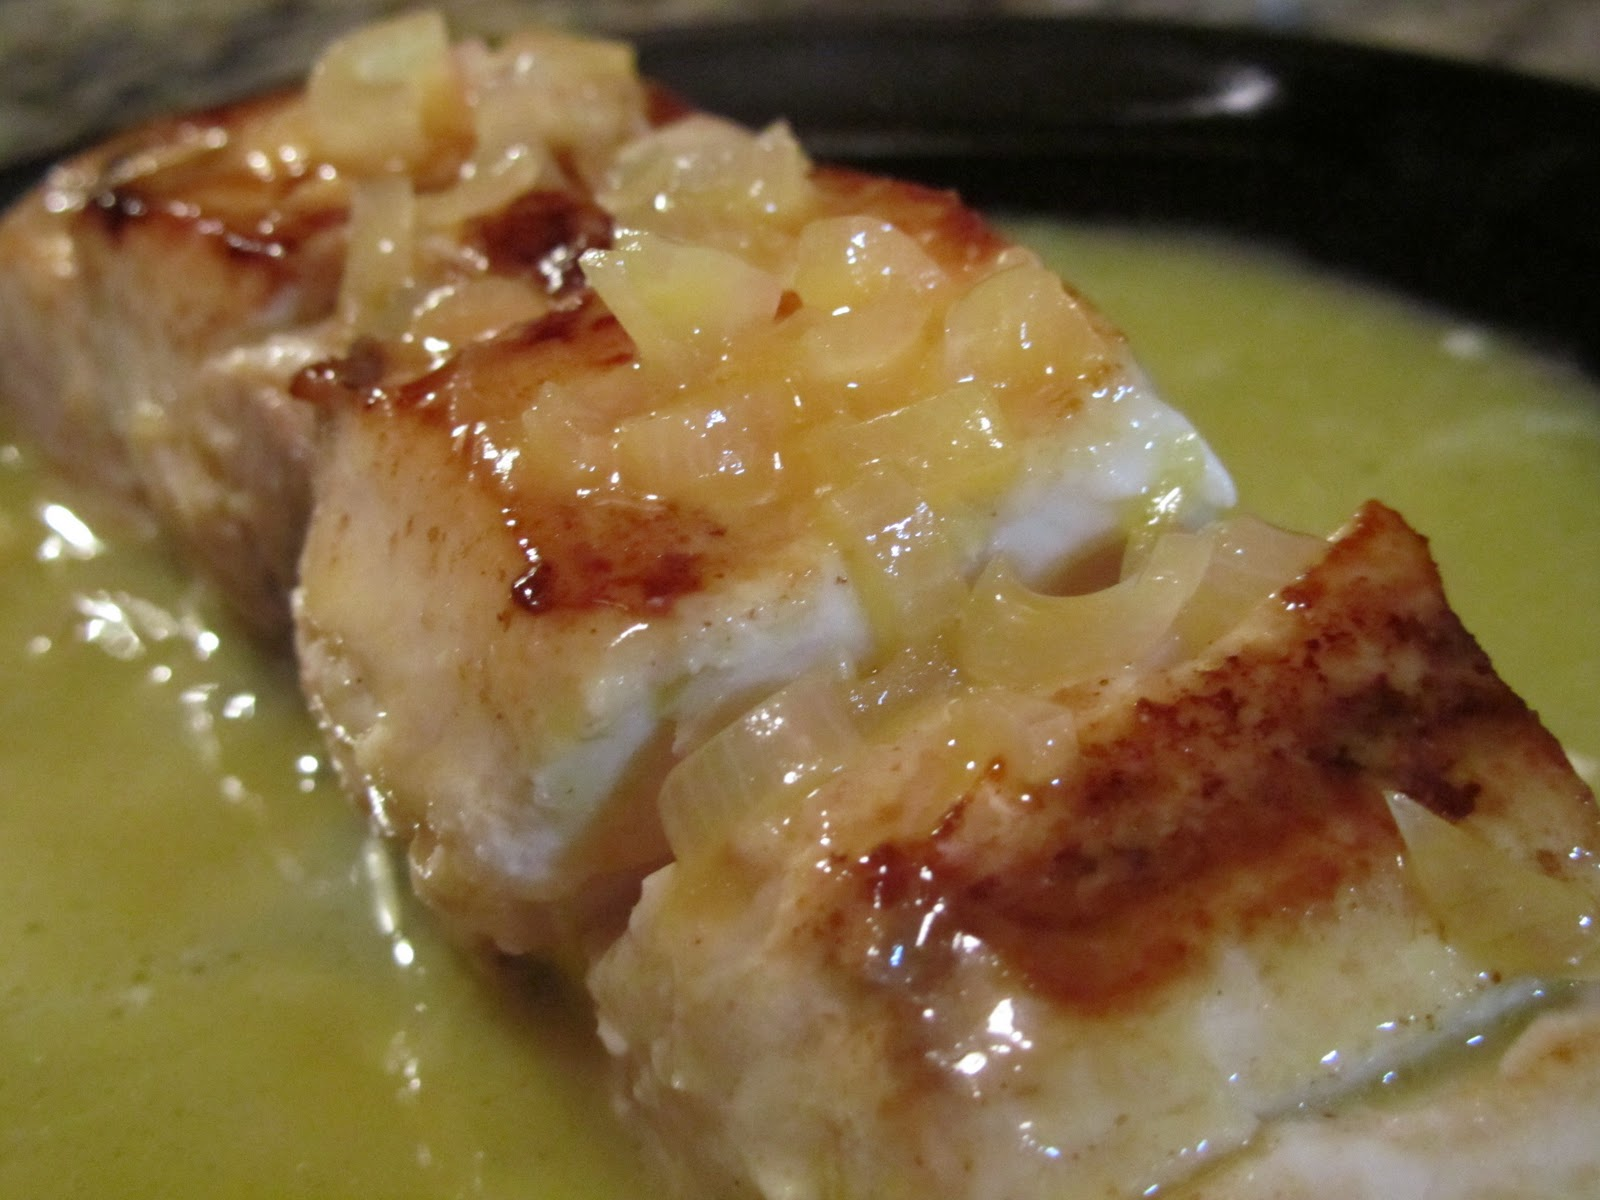 ... fish to a plate and pour the rich beurre blanc sauce over the top